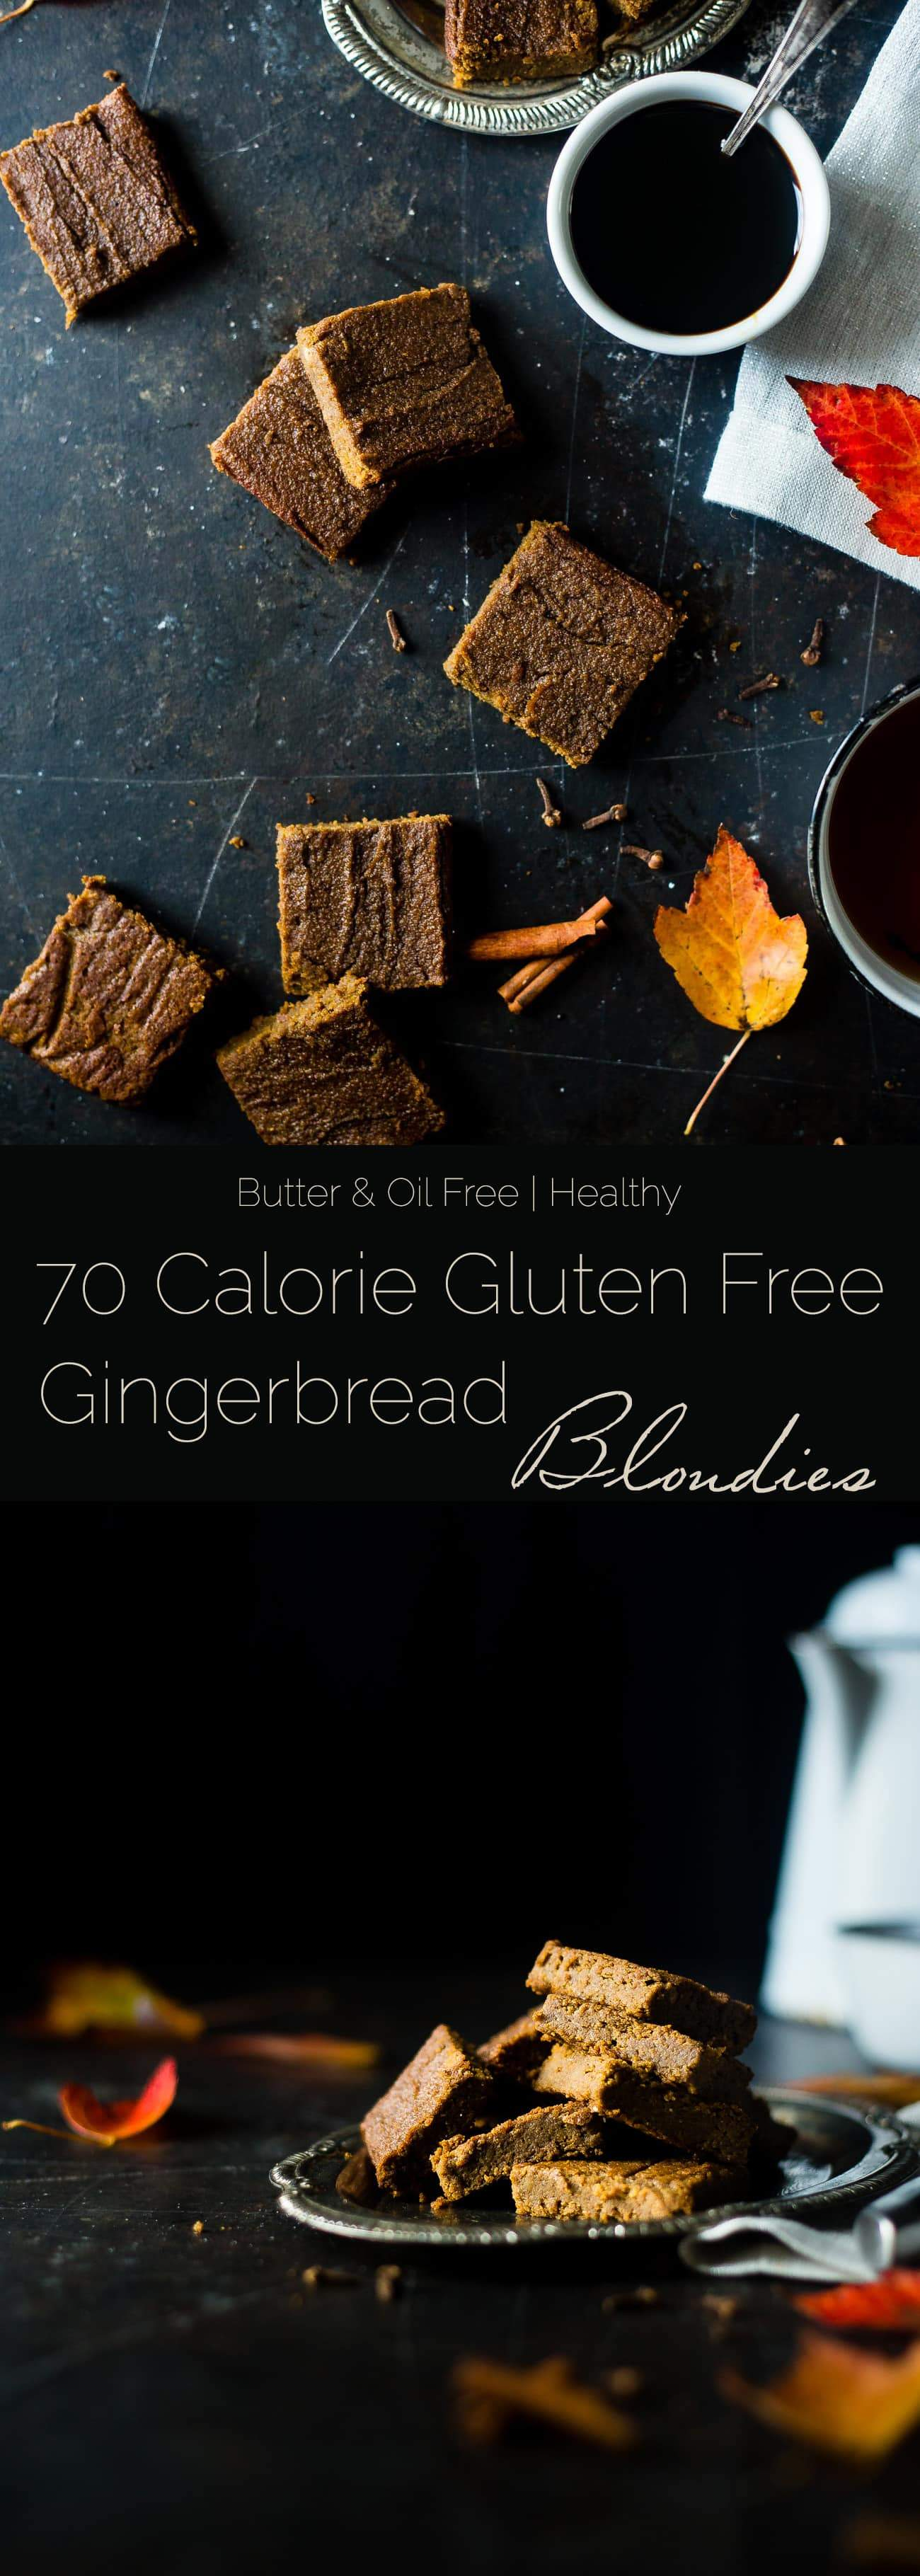 Healthy Gingerbread Blondies - These protein-packed blondies are butter/oil free, gluten free and only 70 calories! A secret ingredient keeps them SO dense and chewy. Perfect for Christmas and the Holidays! | Foodfaithfitness.com | @FoodFaithFit